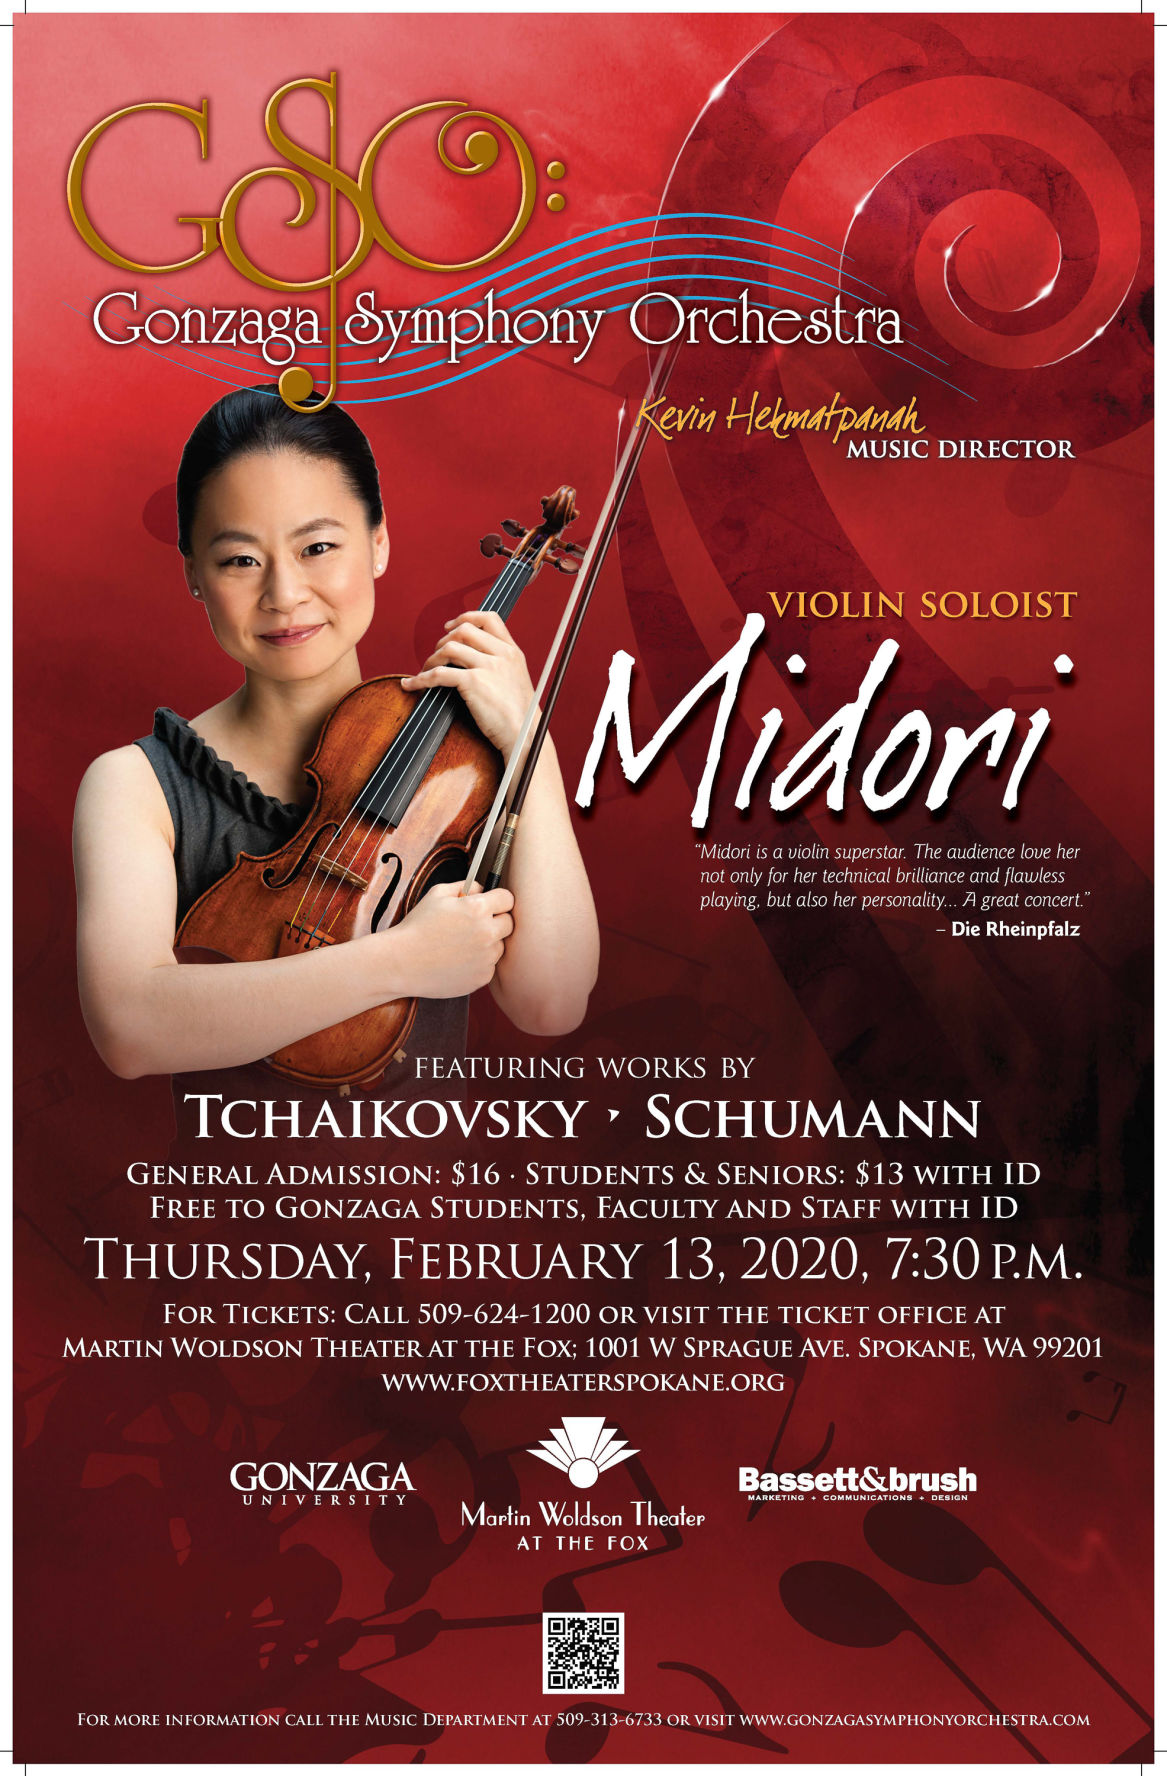 Famous violinist Midori joins Gonzaga Symphony Orchestra on stage